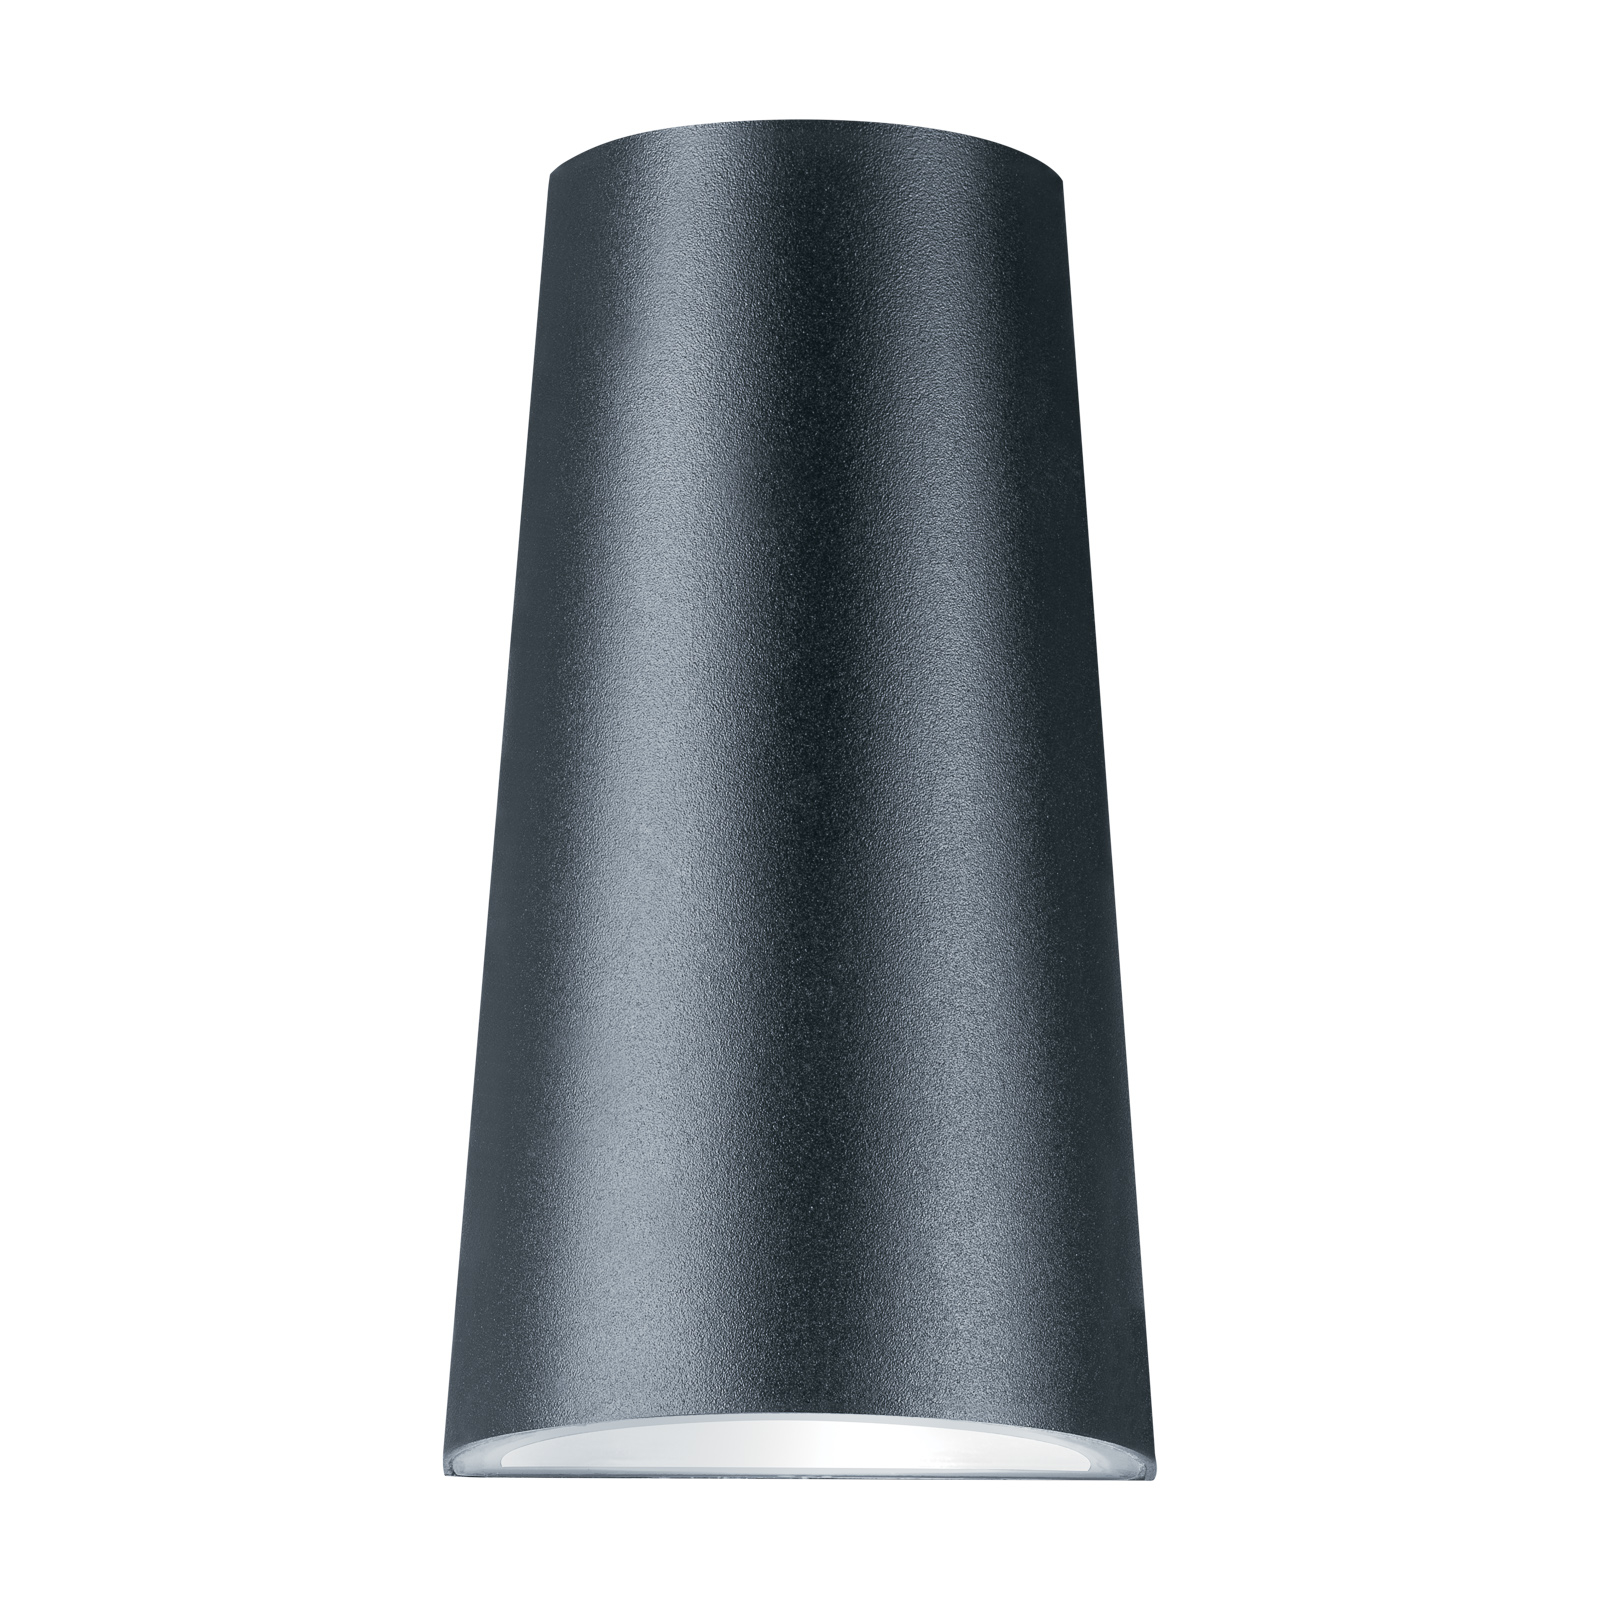 THORNeco Holly Cone Round Down LED-Wandleuchte